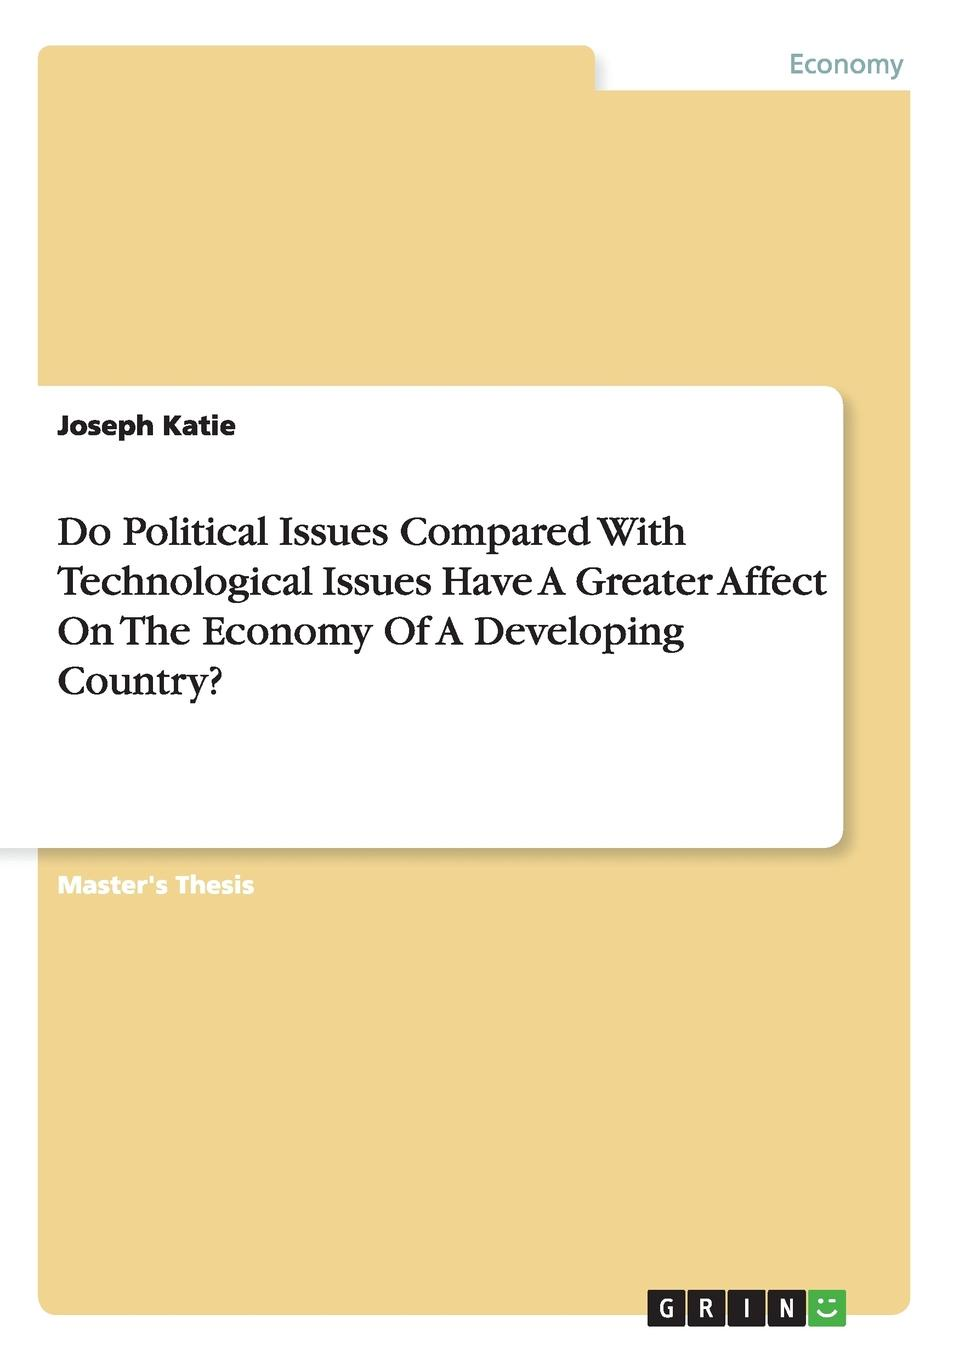 Joseph Katie Do Political Issues Compared With Technological Issues Have A Greater Affect On The Economy Of A Developing Country. economic and political impacts of business improvement district